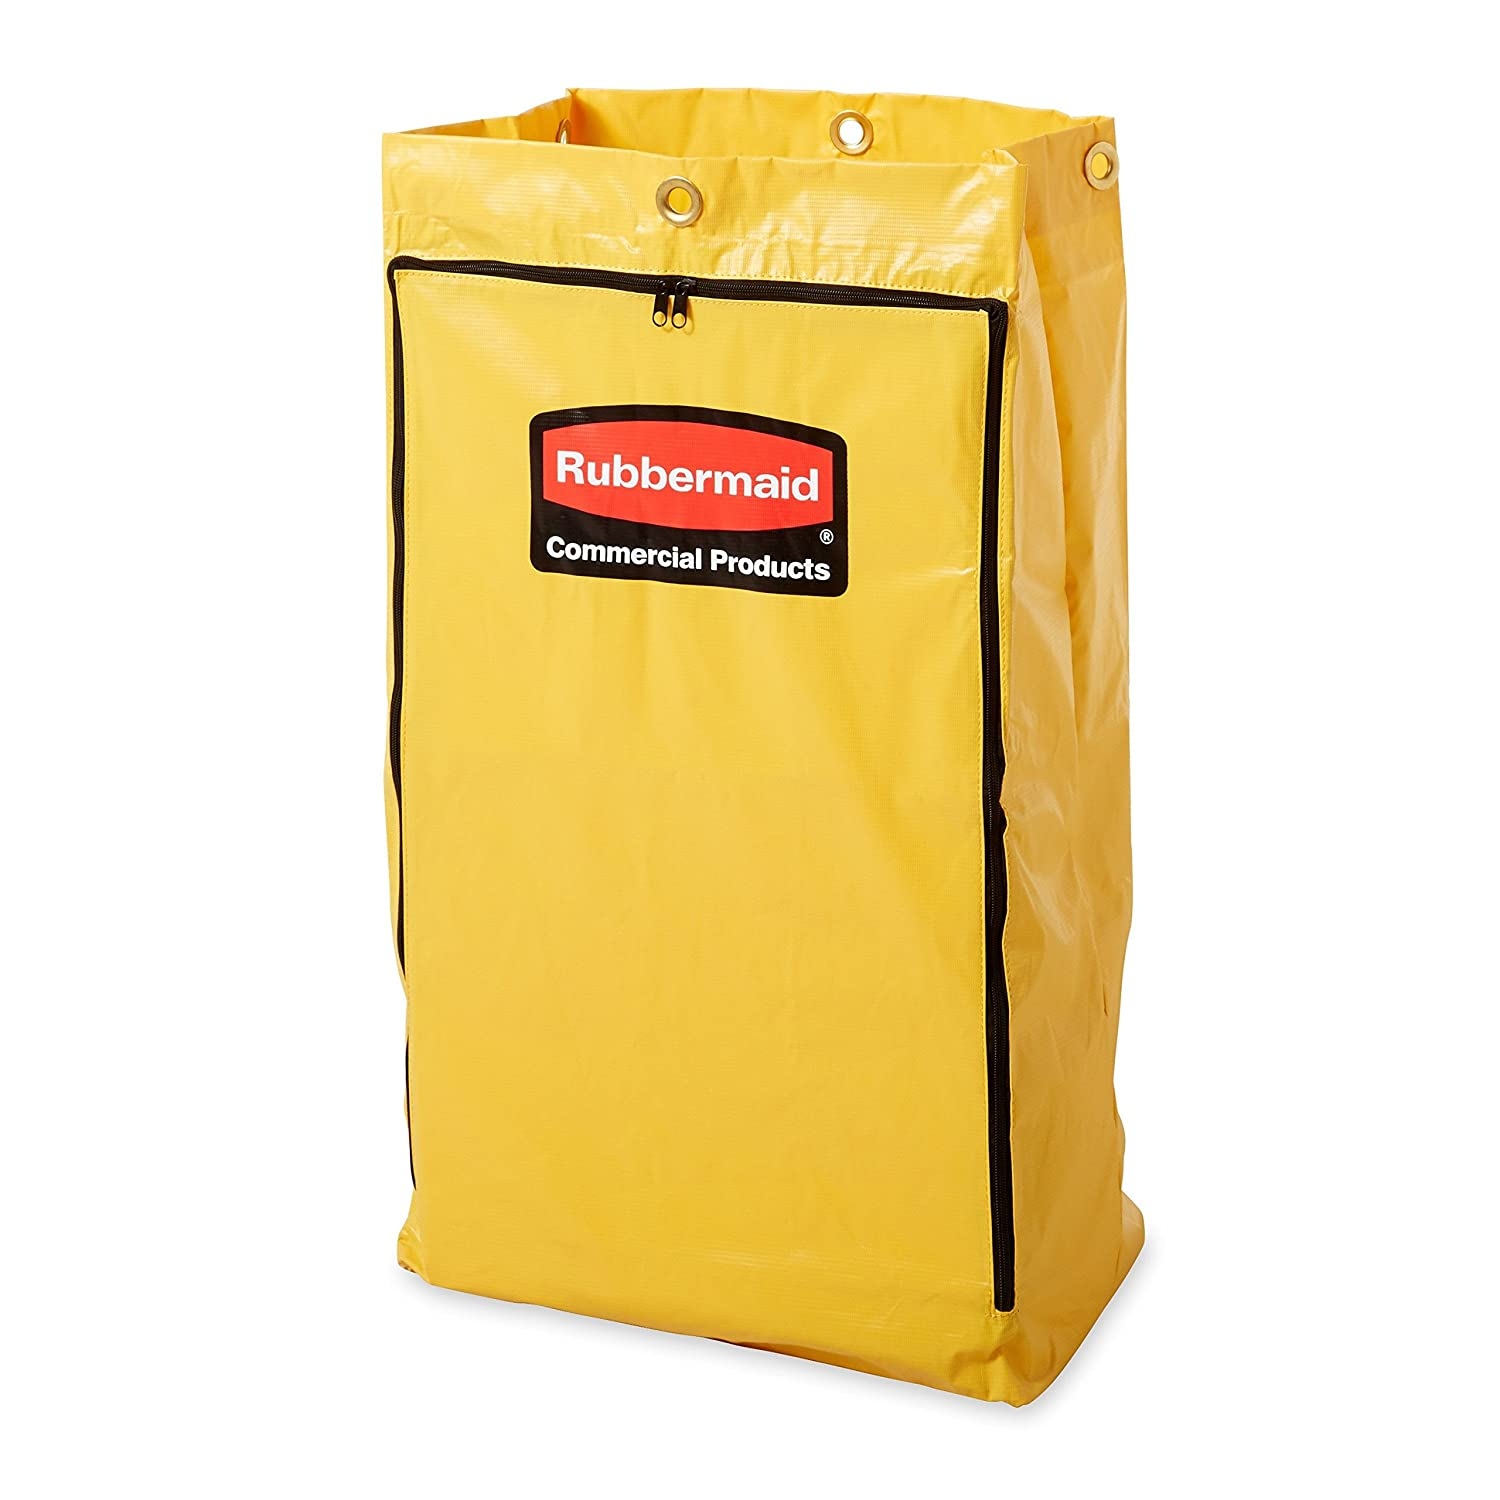 Rubbermaid Vinyl Replacement Bag with Zipper for Cleaning Cart - Yellow FG618300YEL 172495